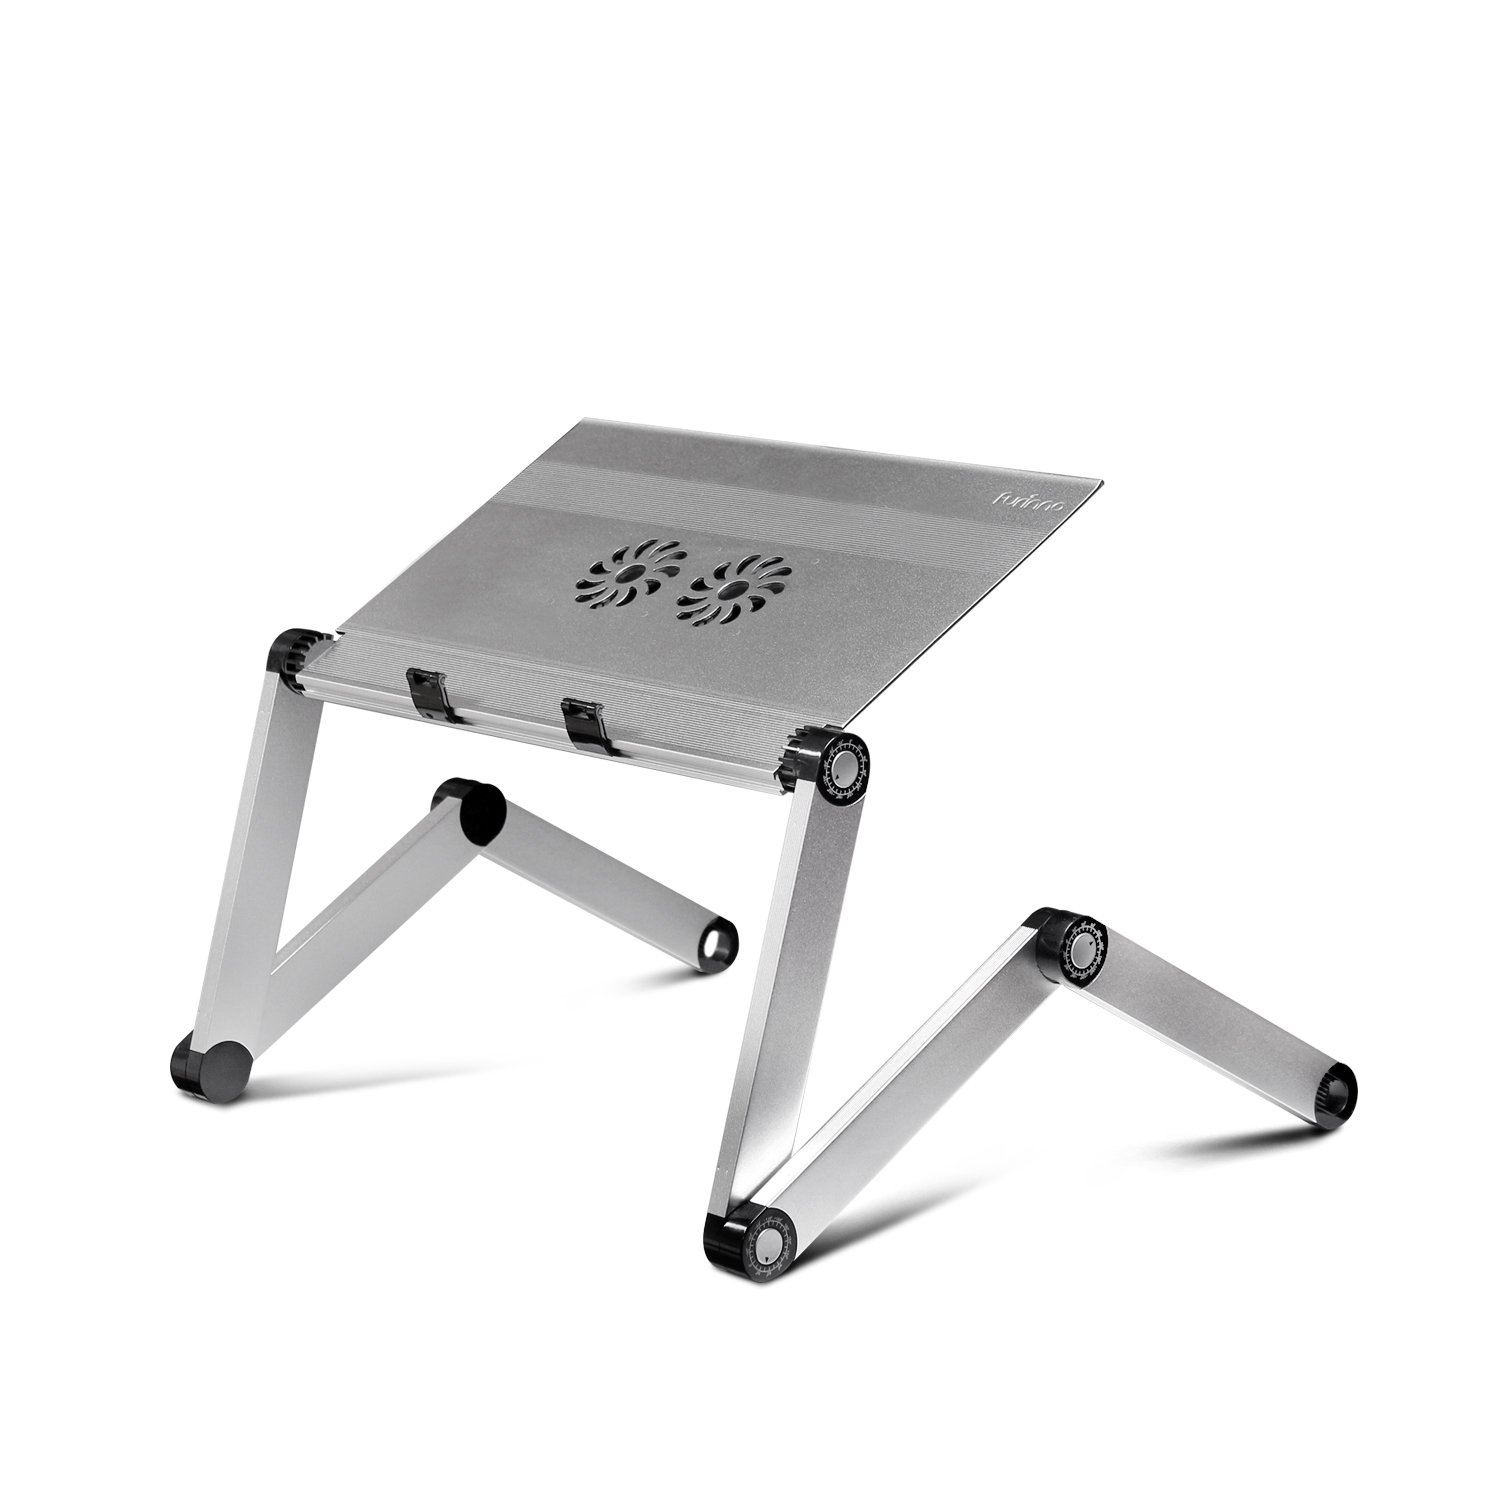 Furinno X7-SilverAluminum Adjustable Cooler Fan Laptop Table Portable Bed Tray, Silver